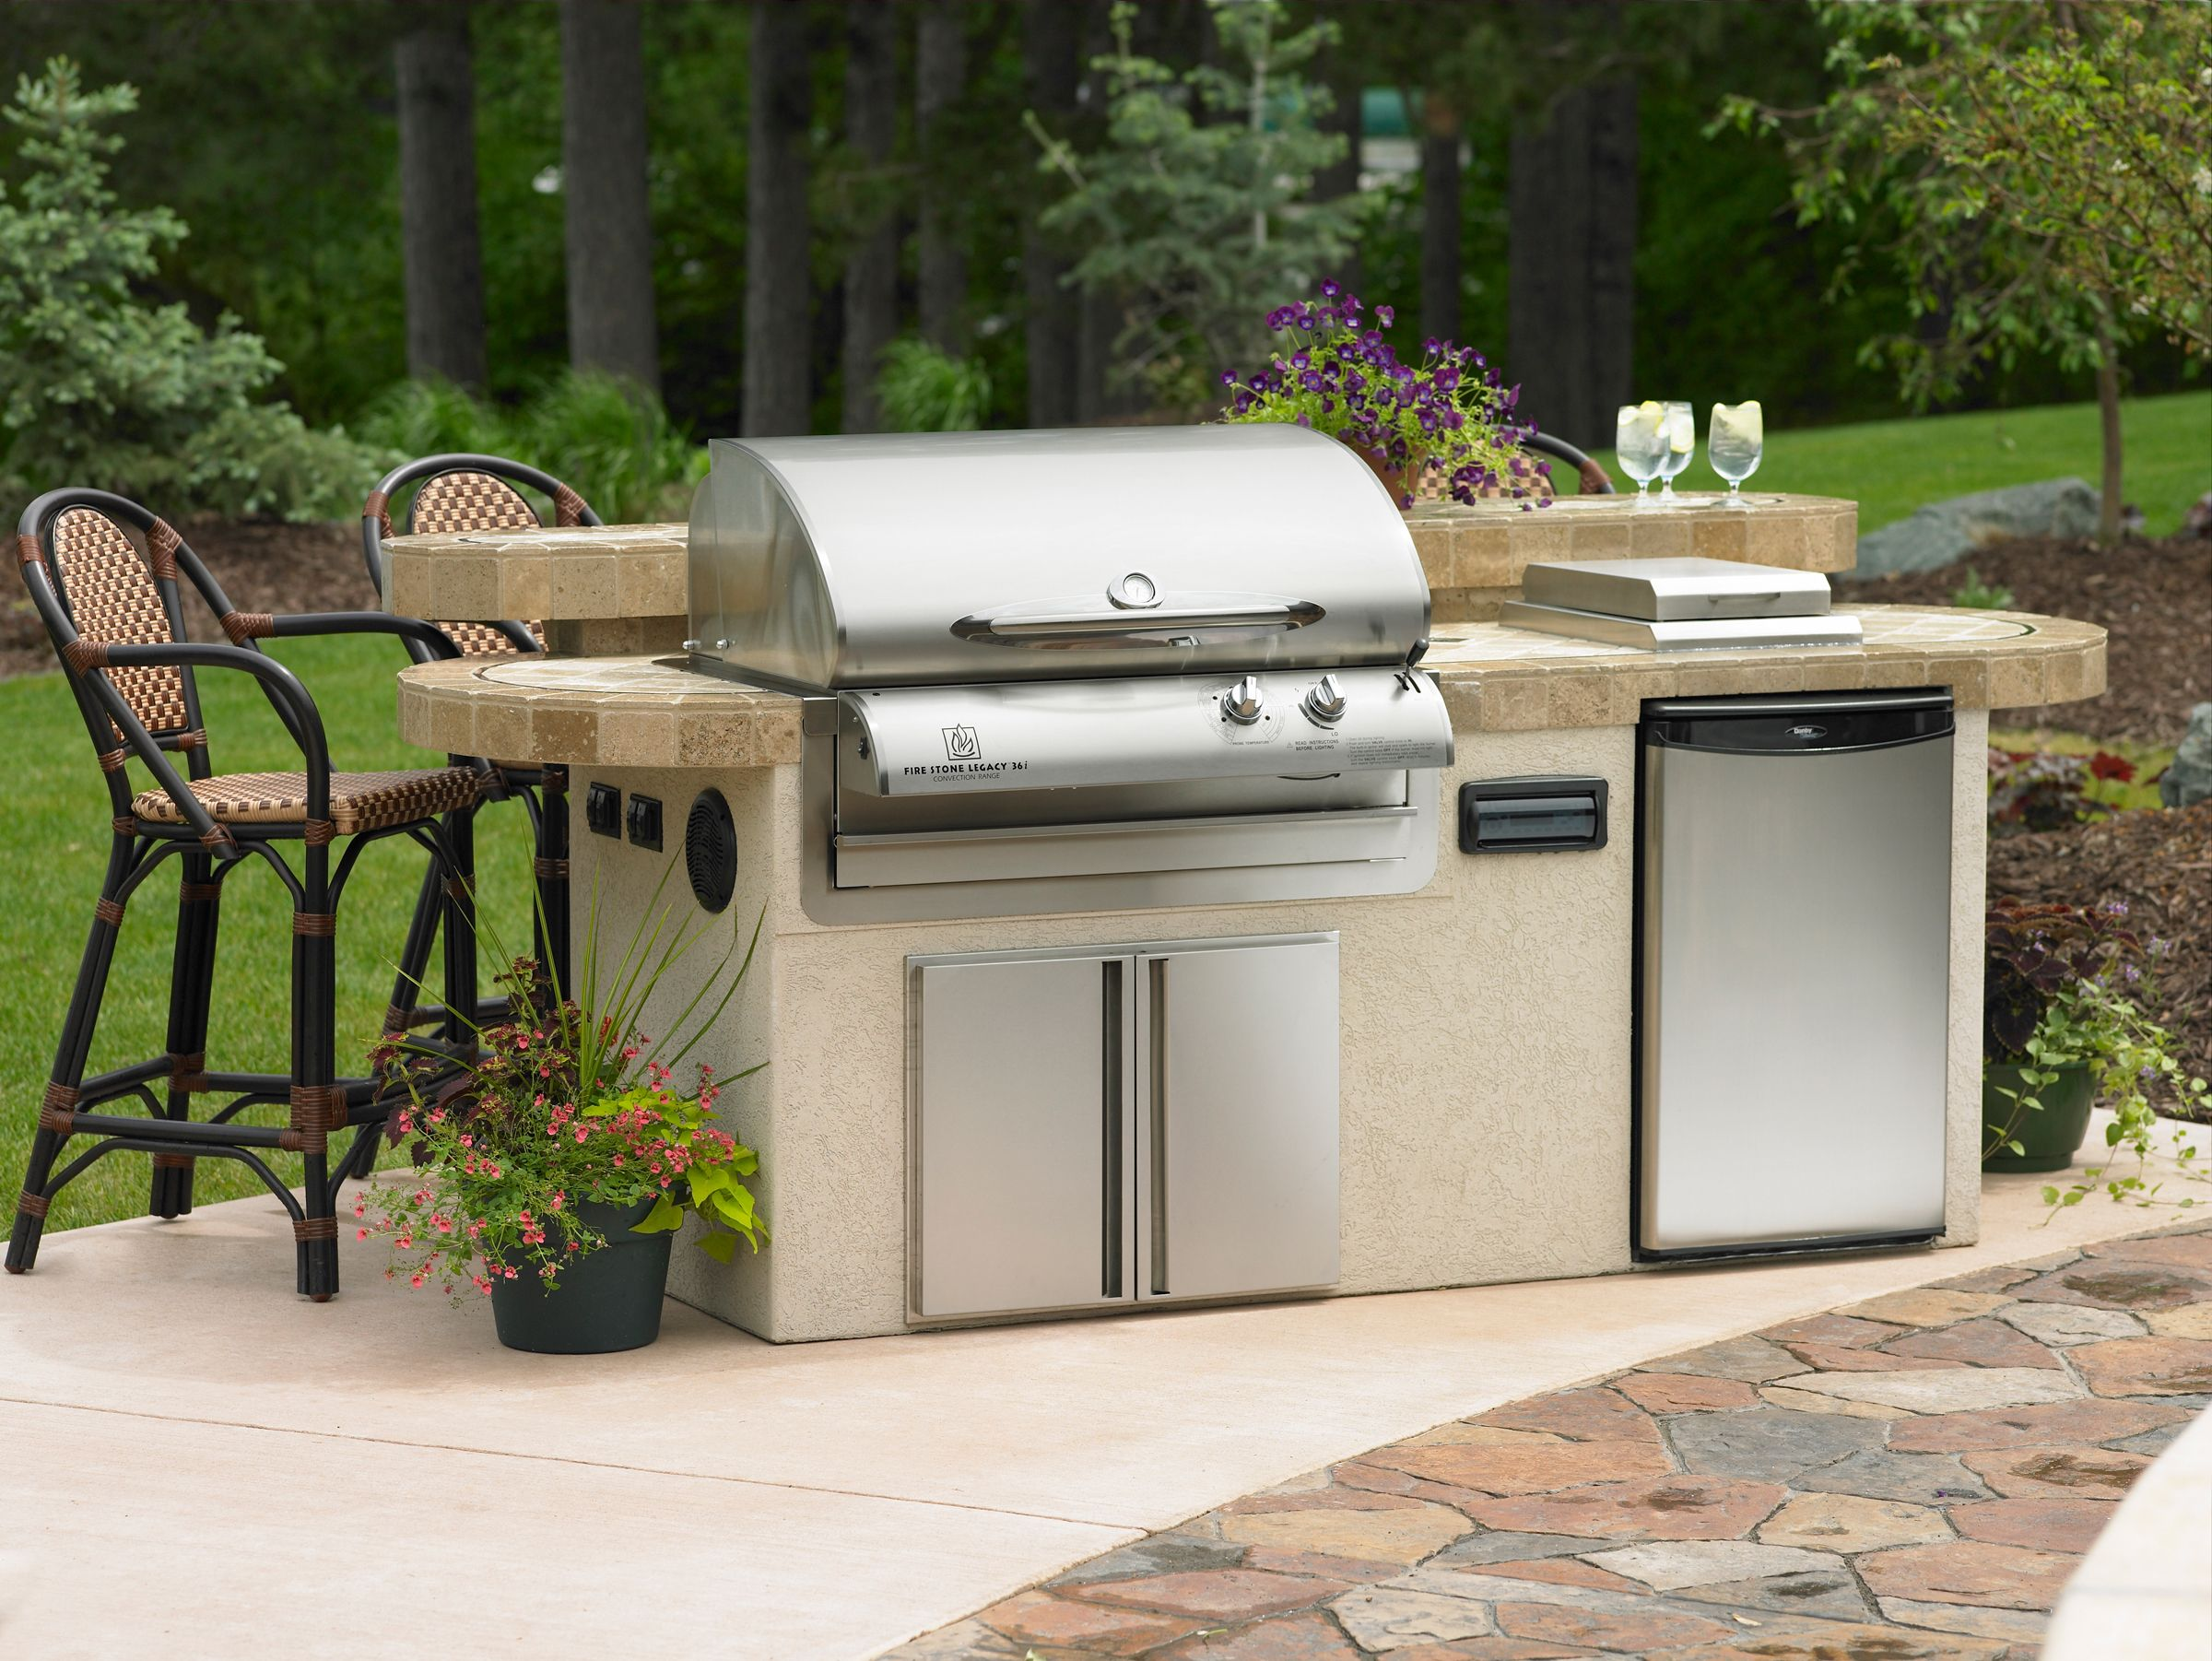 New Island Grills With Refrigerator And Bar And Built In Speakers